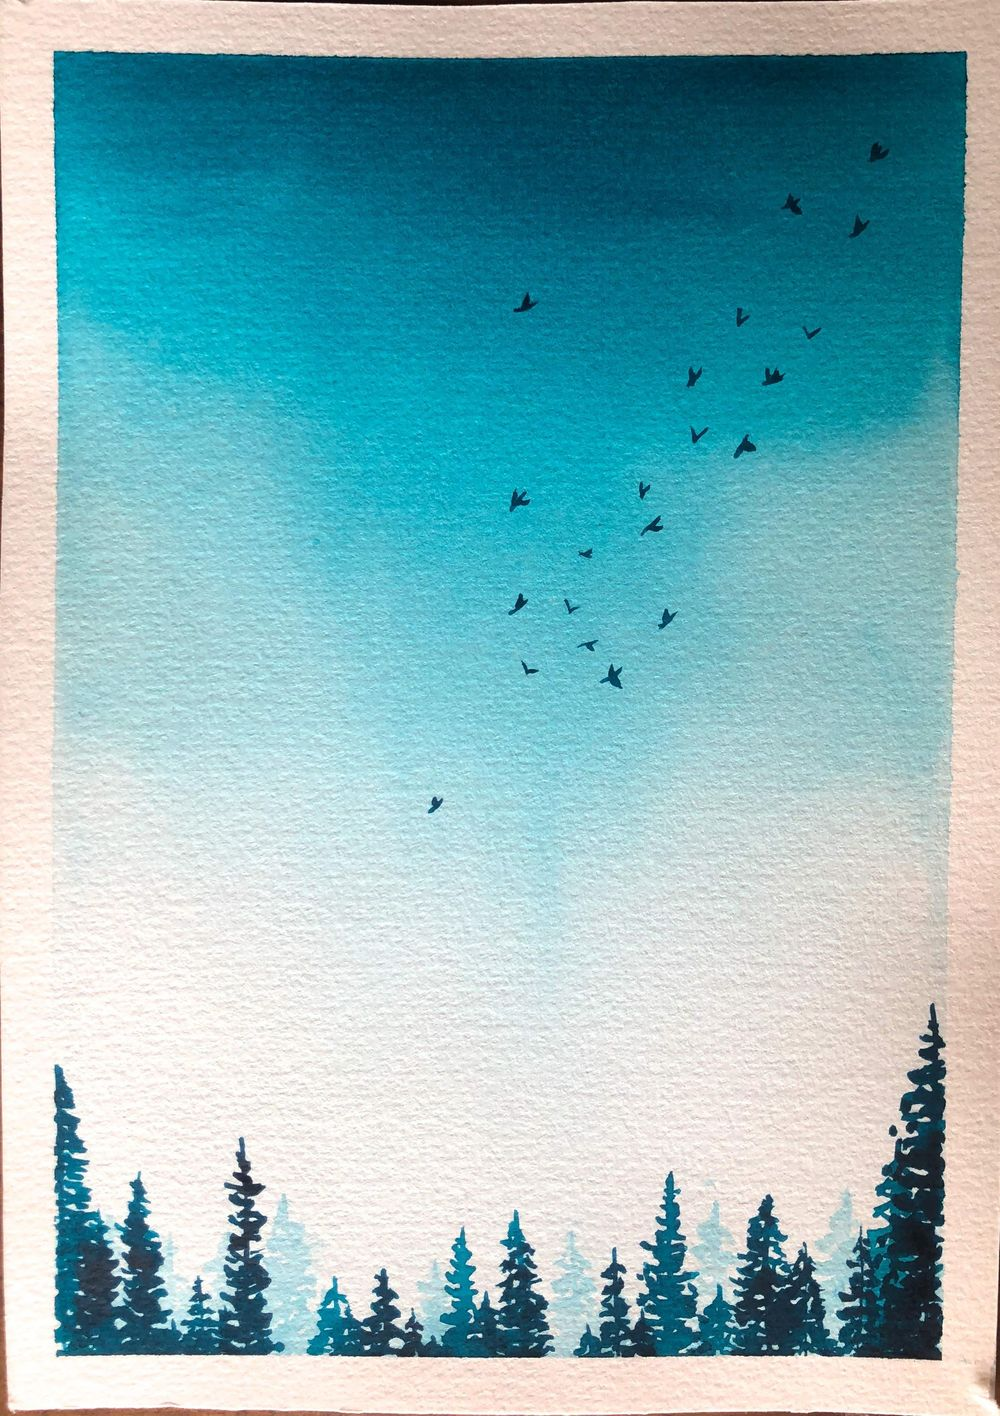 Serene Landscapes Watercolour - image 4 - student project